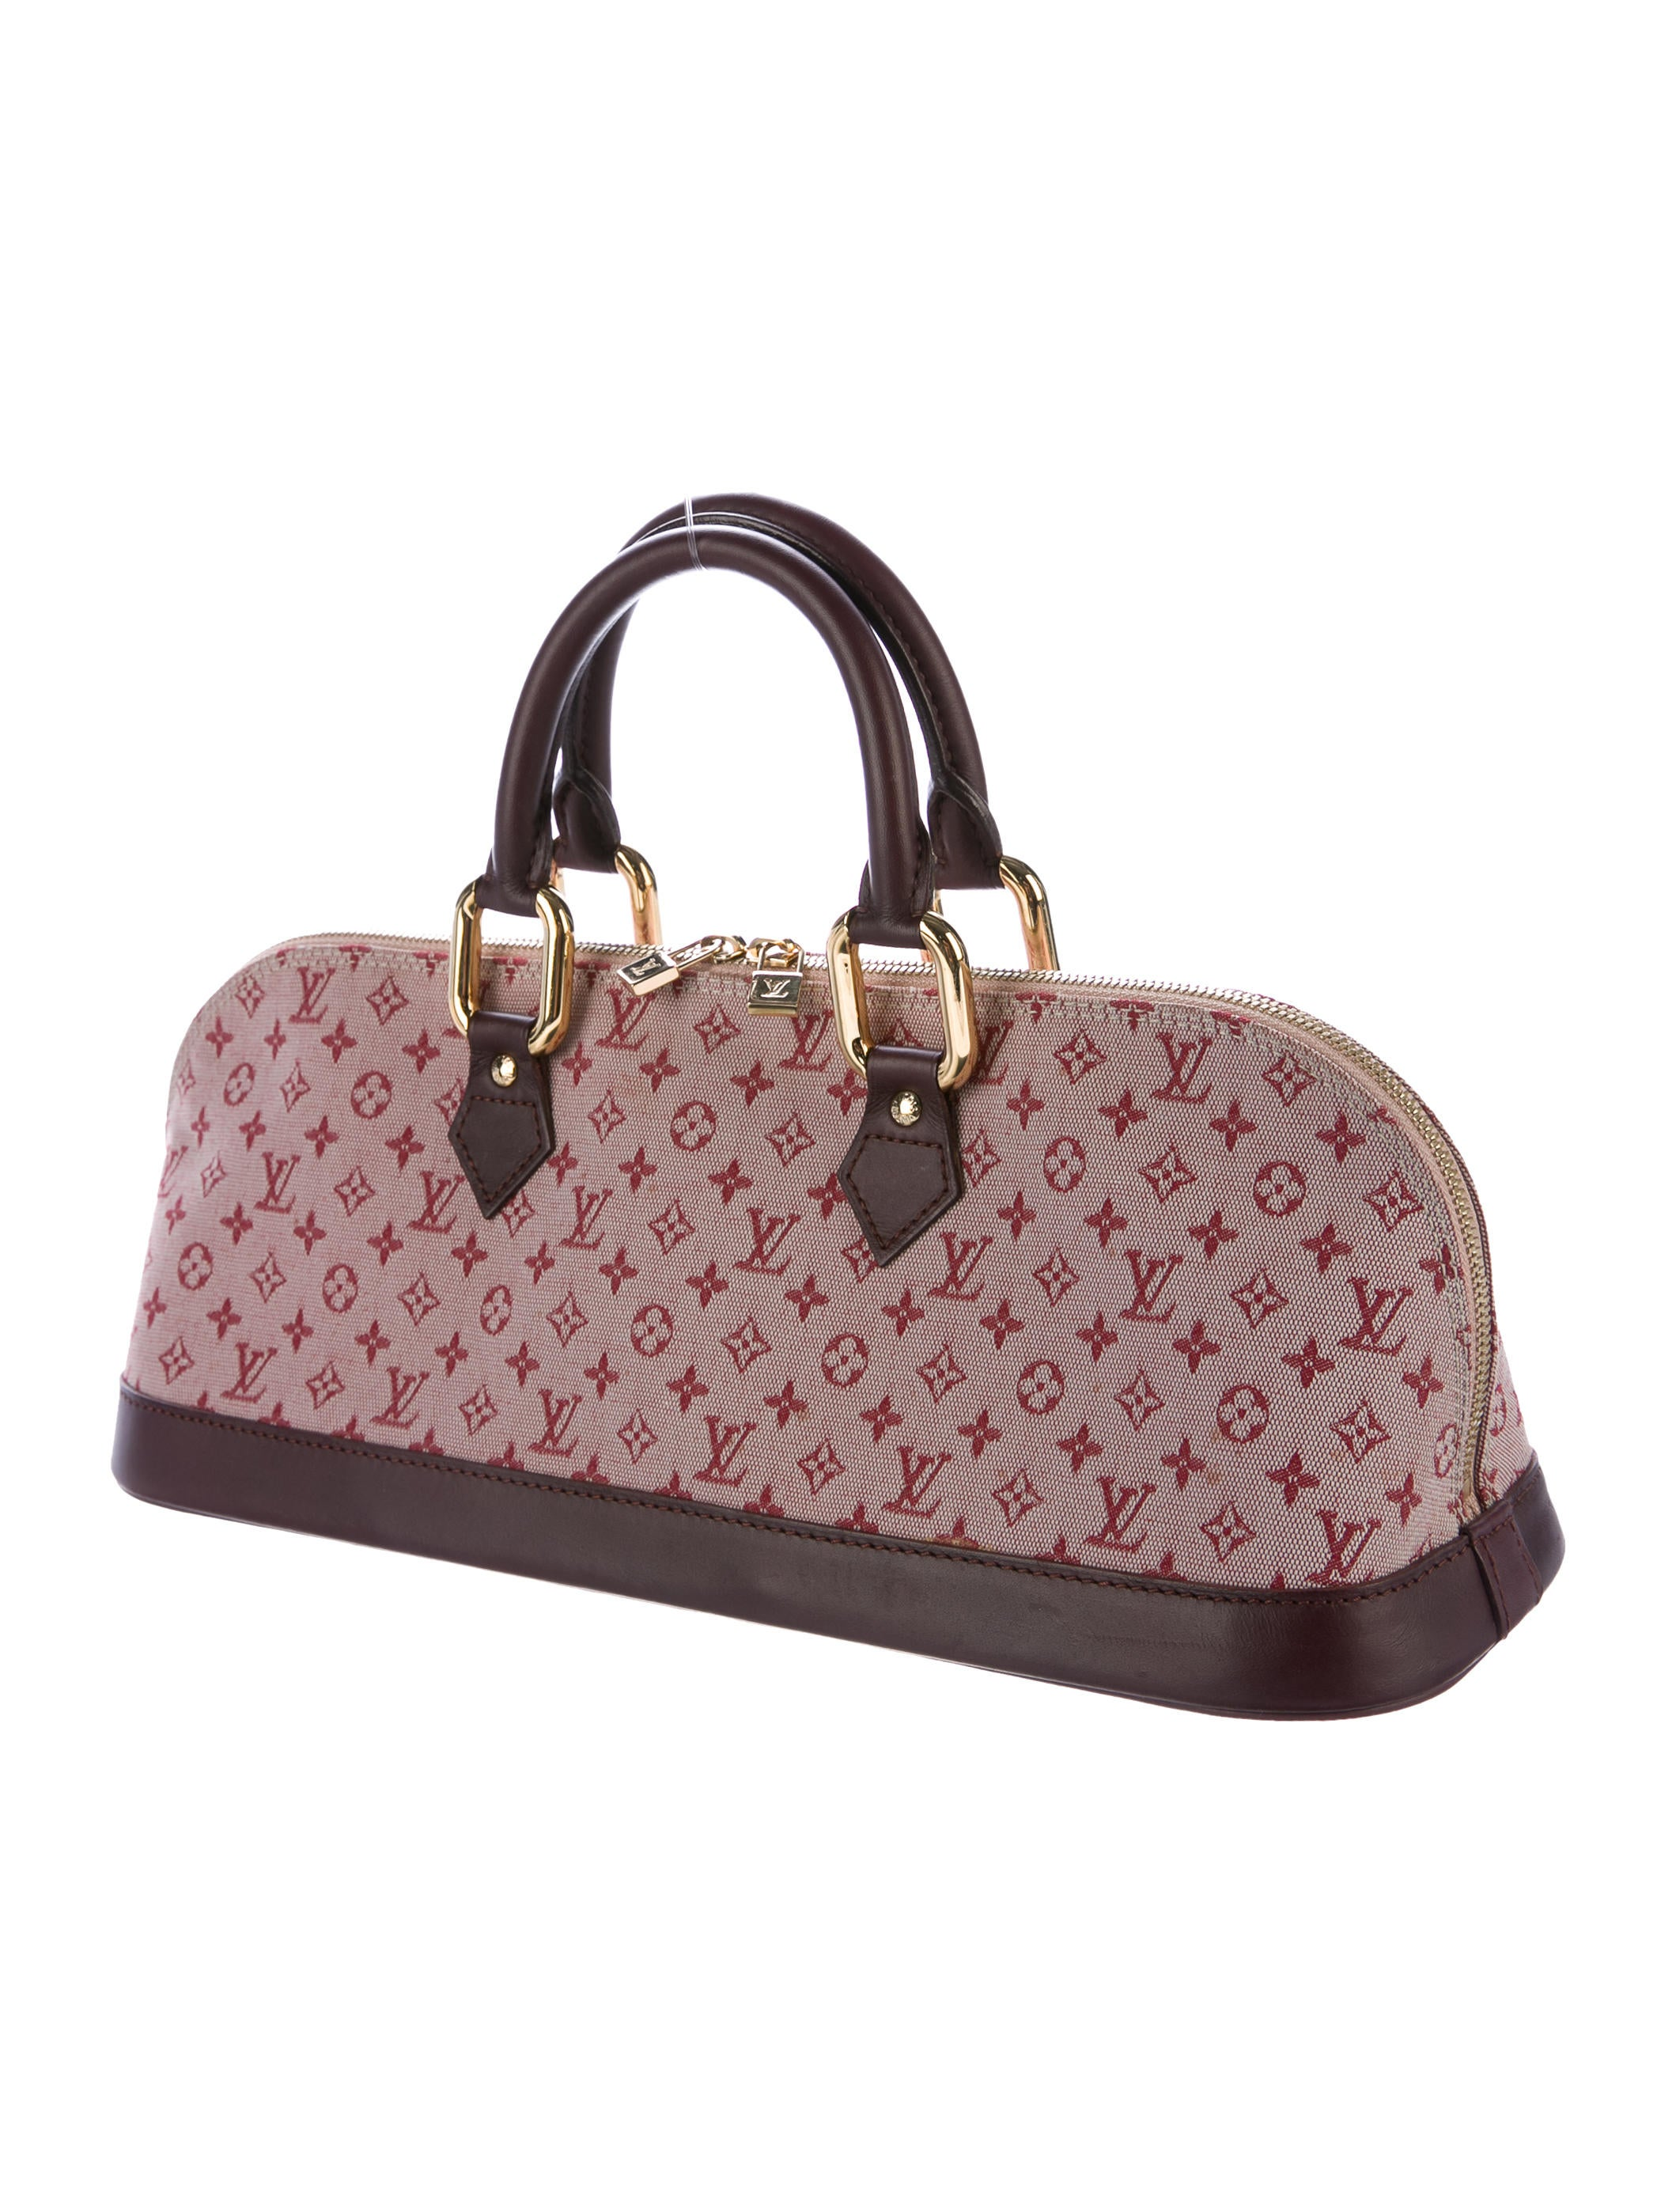 Louis vuitton mini lin alma long bag handbags for Louis vuitton miroir alma bag price